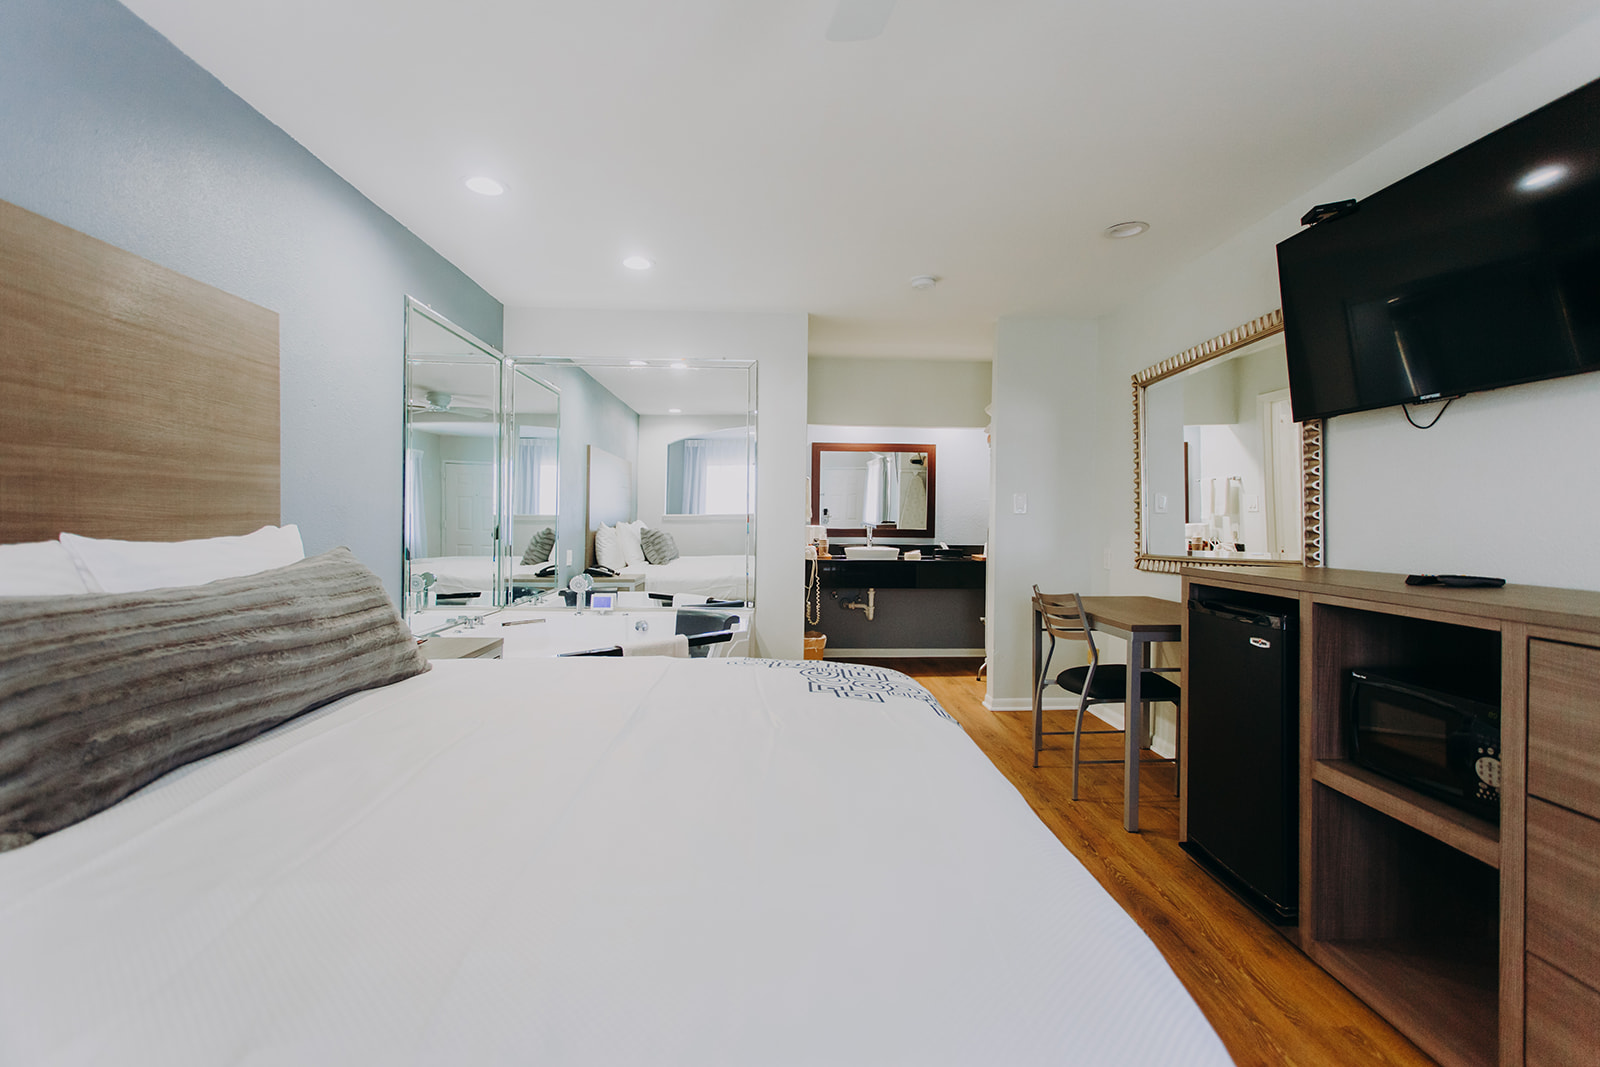 King bed, jacuzzi, mirrored walls, wooden unit with fridge and microwave, wall mounted flat screen tv, desk with chair, mirror, alcove with vanity unit and mirror, laminate flooring